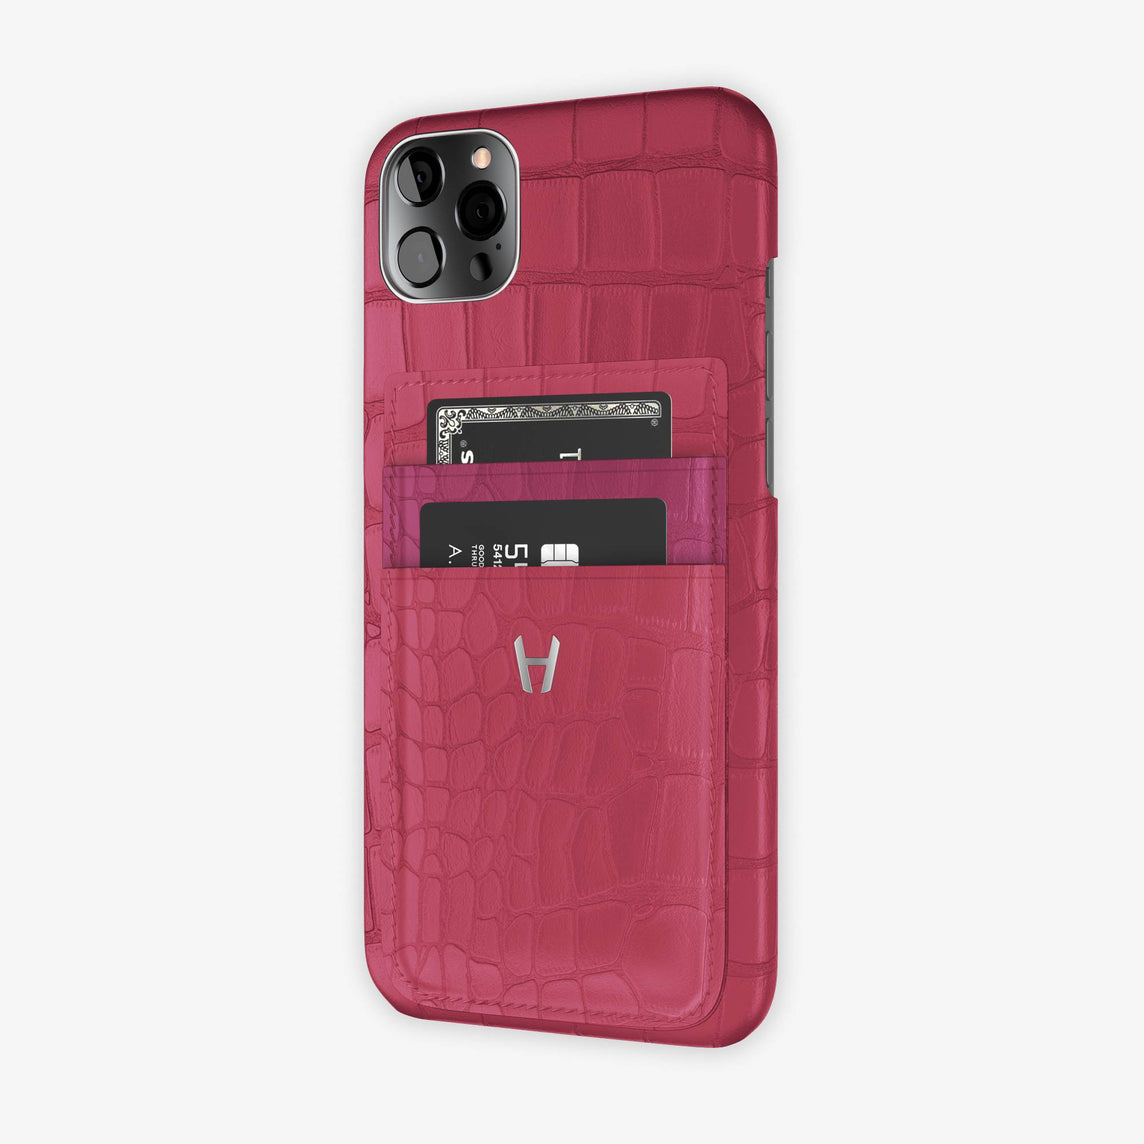 Alligator Pocket Case iPhone 12 Pro Max | Pink Girly/Pink Fuchsia - Stainless Steel